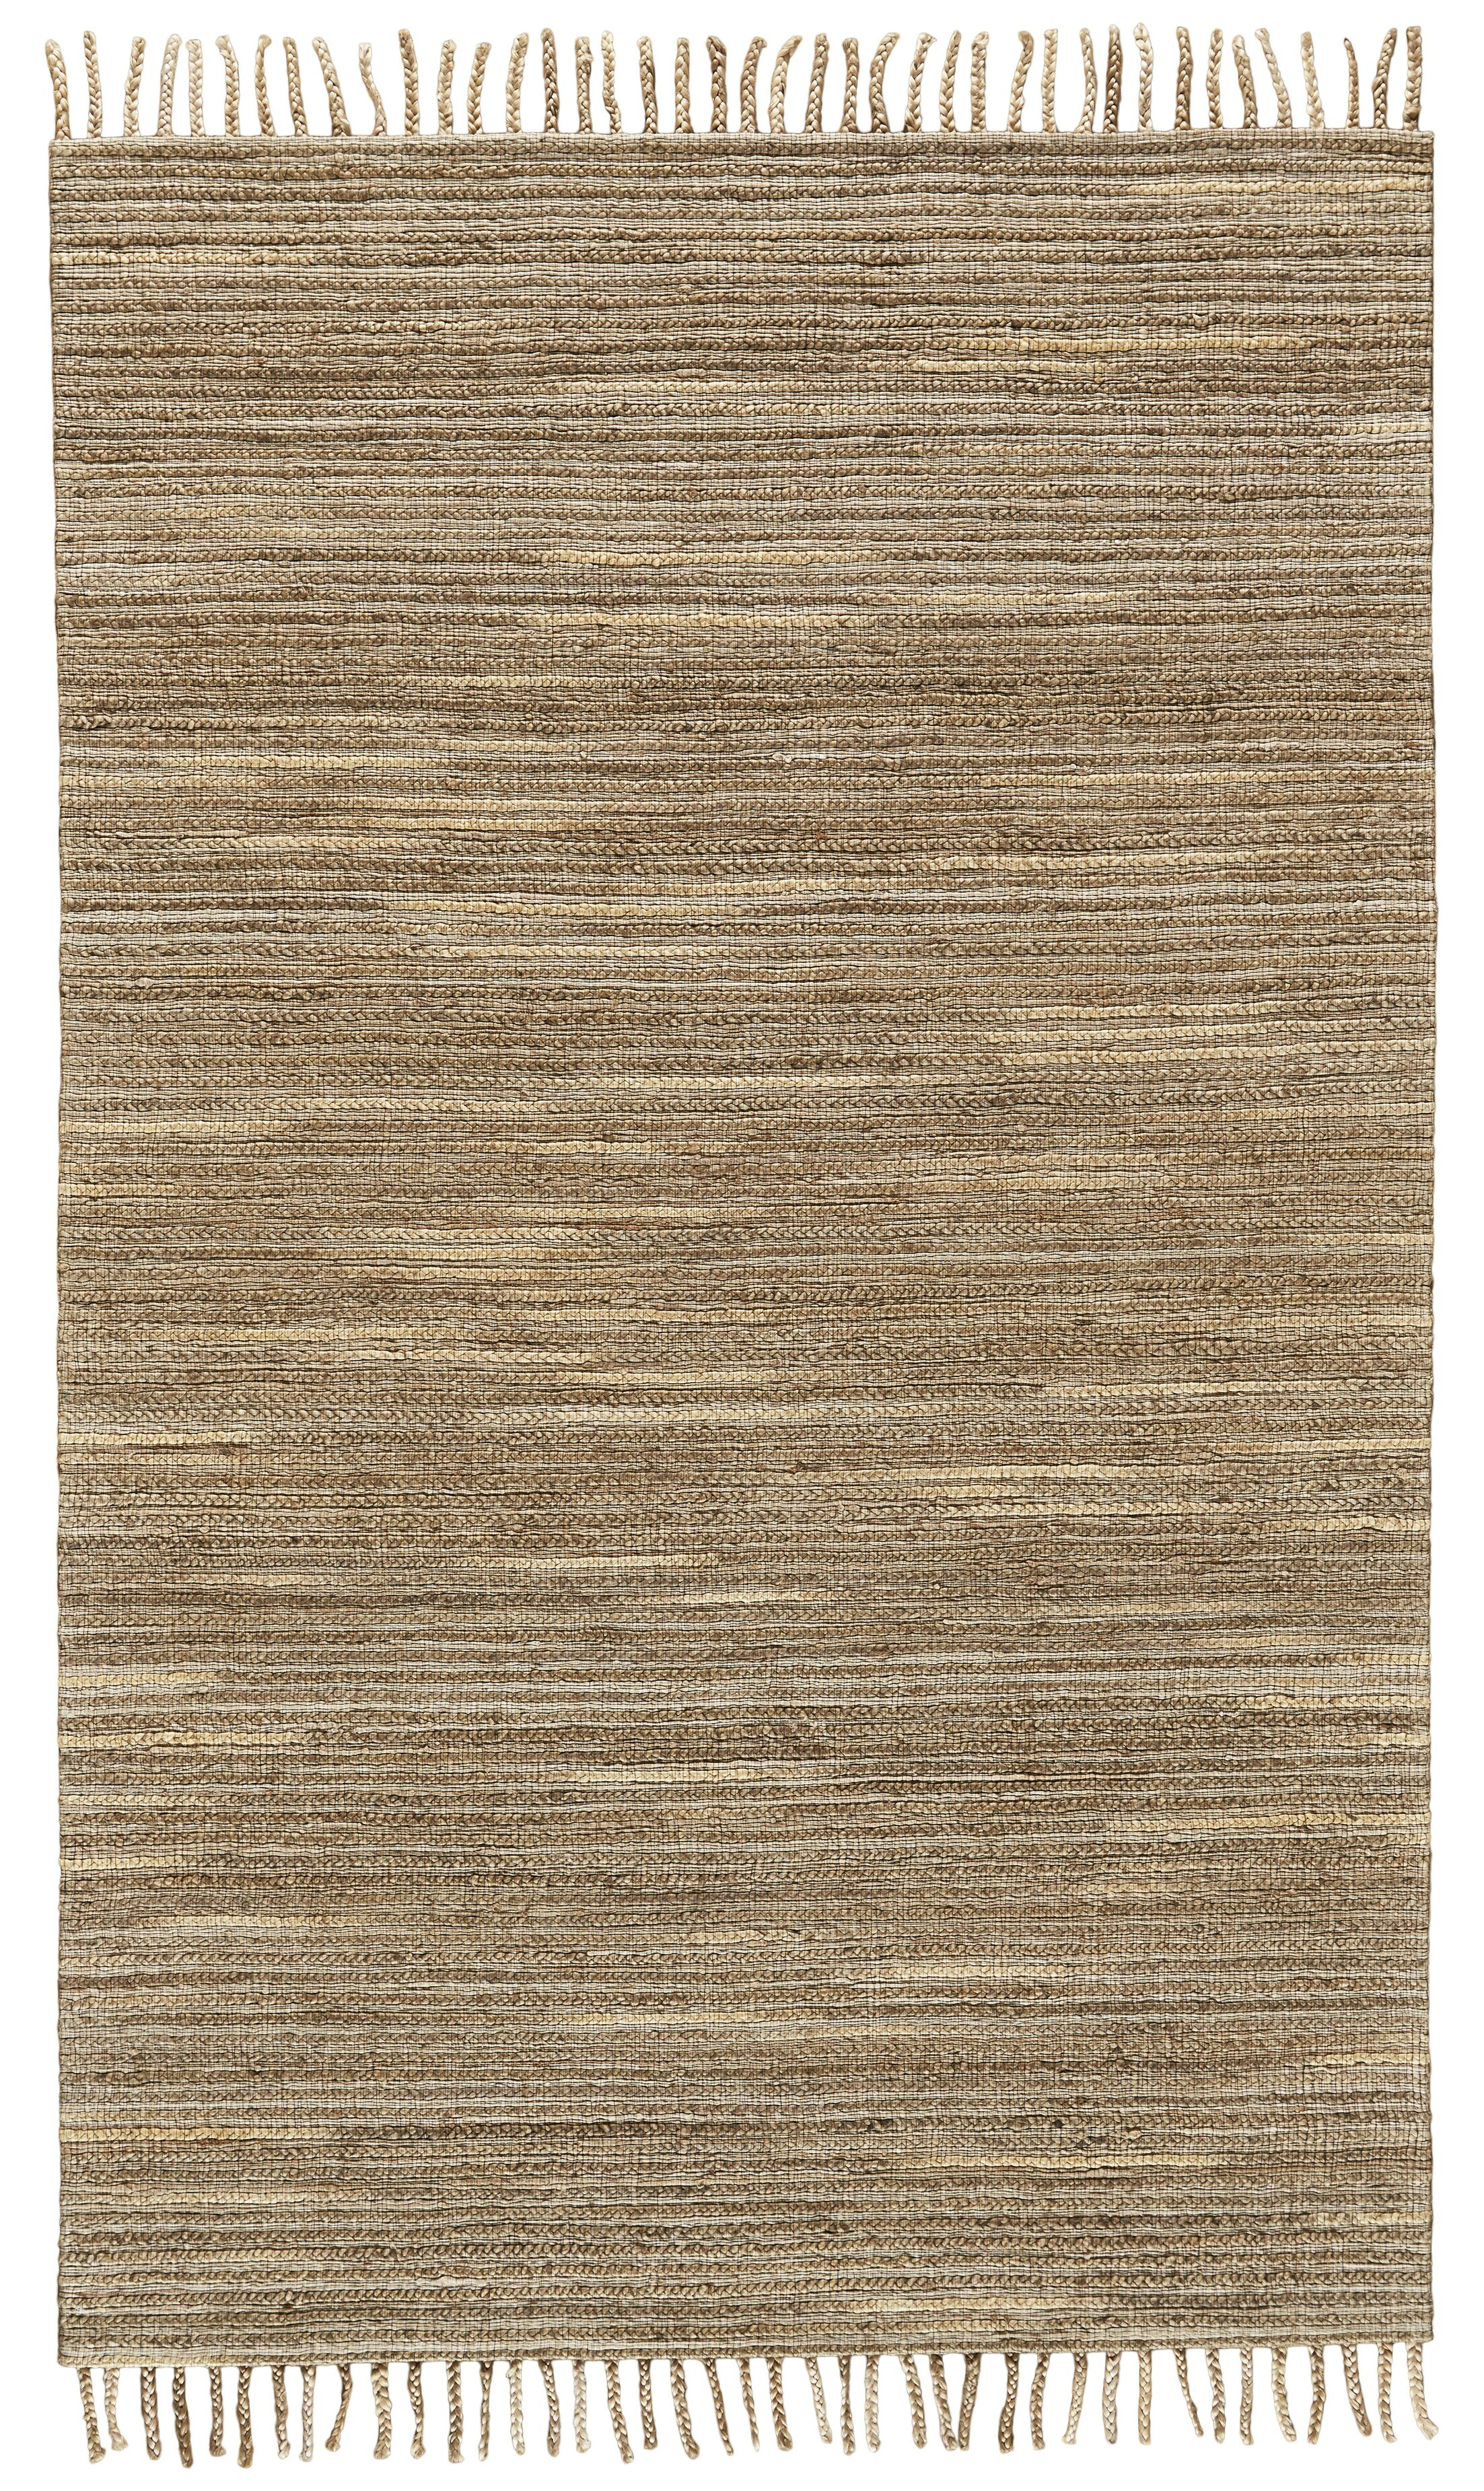 Reichert Hand-Woven Brown Area Rug Rug Size: Rectangle 5' x 8'